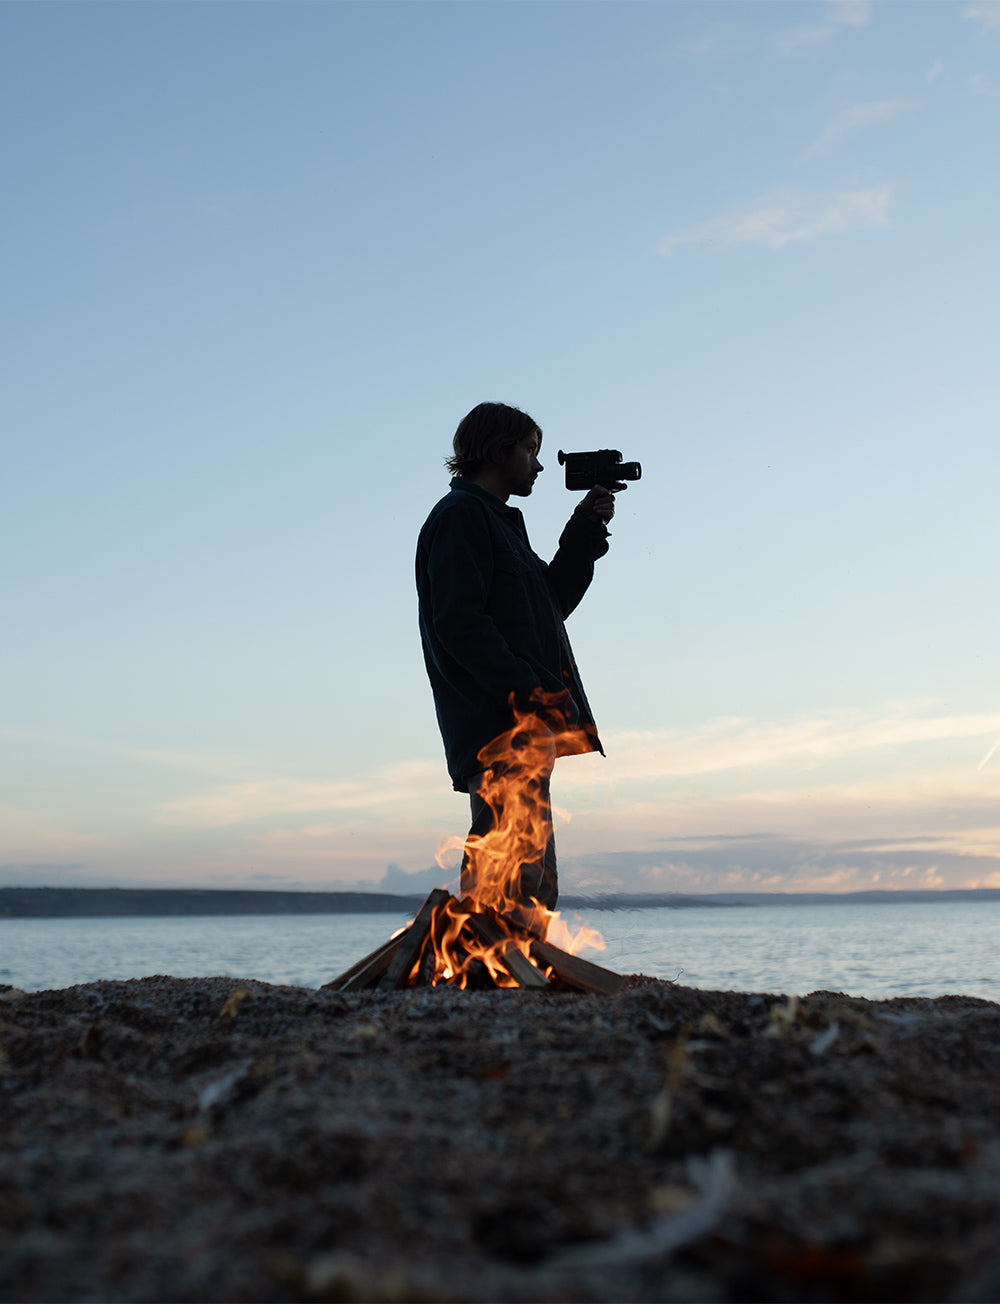 Man looks towards the rising sun with retro super35 camera. Campfire burns infront of him.